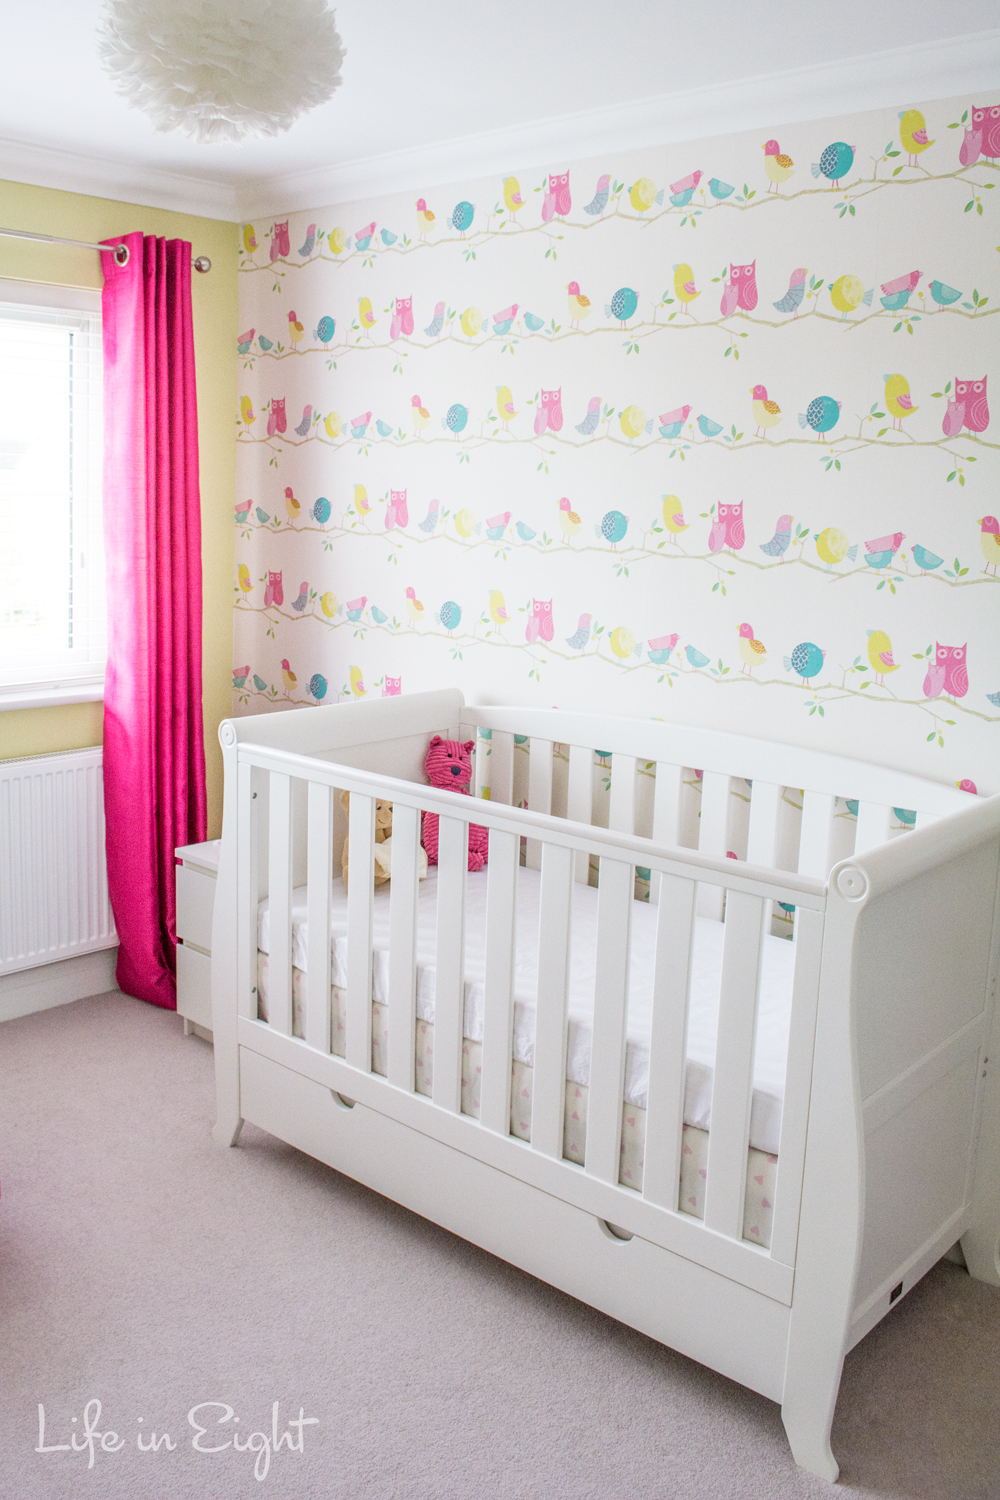 Harlequin Nursery Wallpaper Nursery-reveal-01.jpg